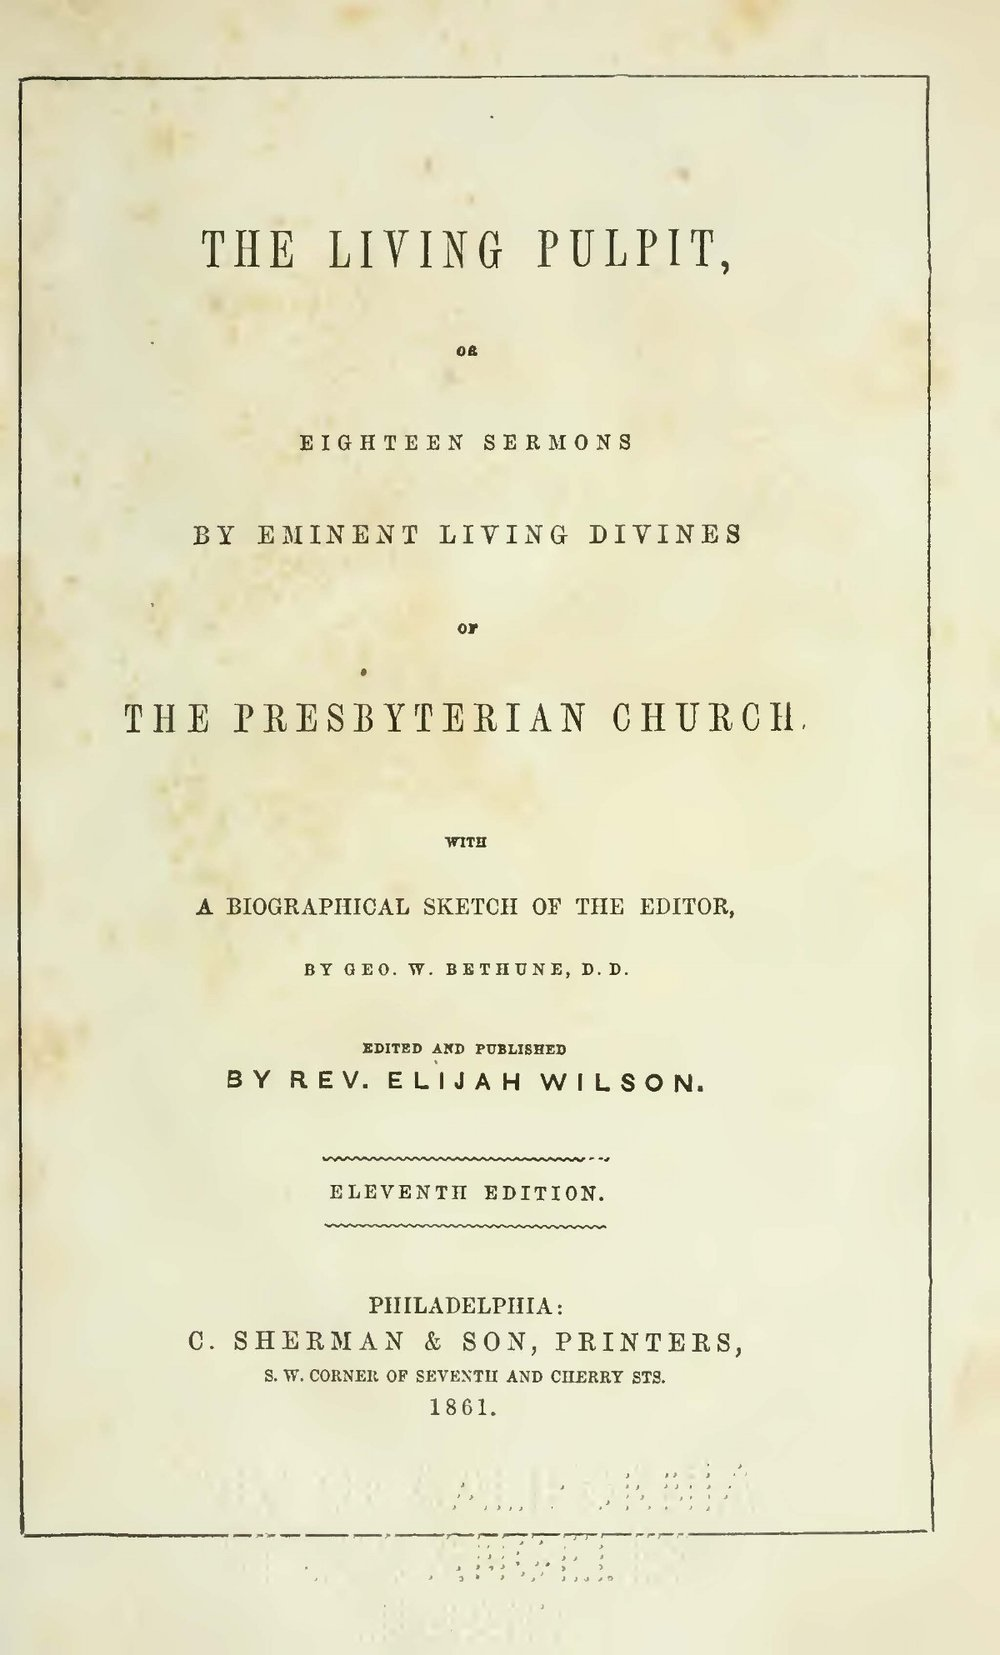 Wilson, Elijah, The Living Pulpit Title Page.jpg